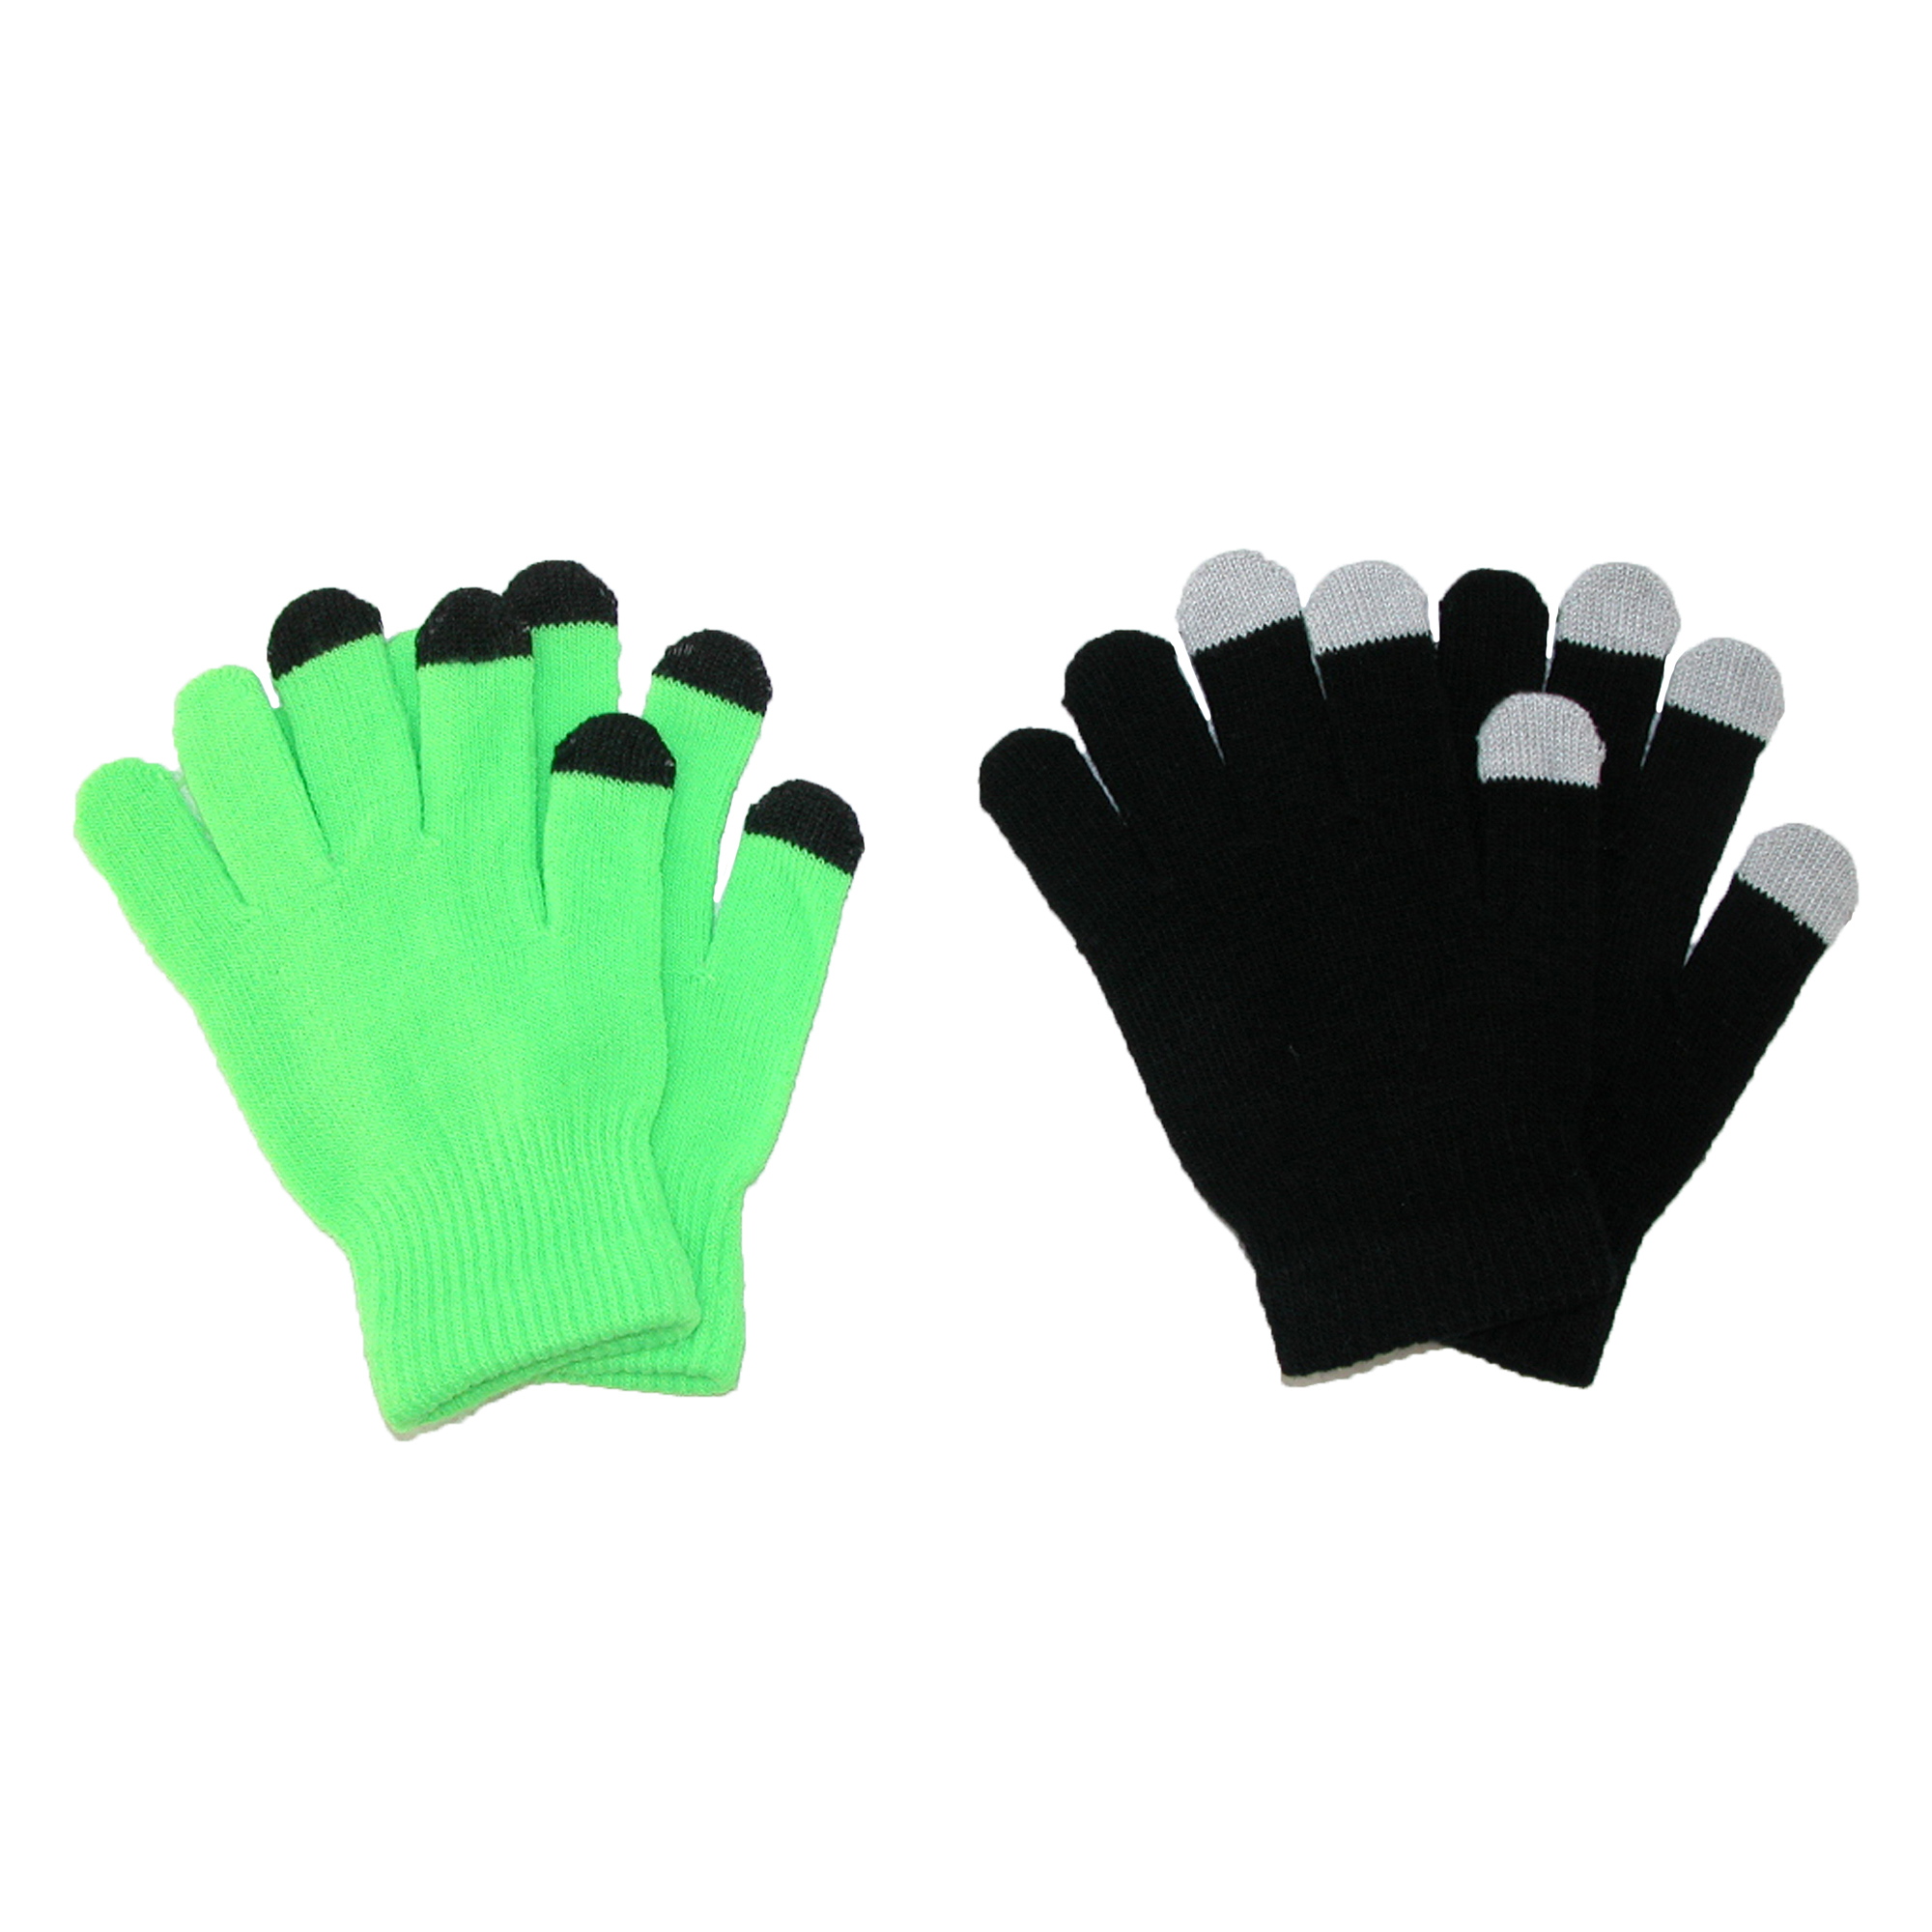 CTM®  Grip Knit Texting Winter Gloves (Pack of 2)